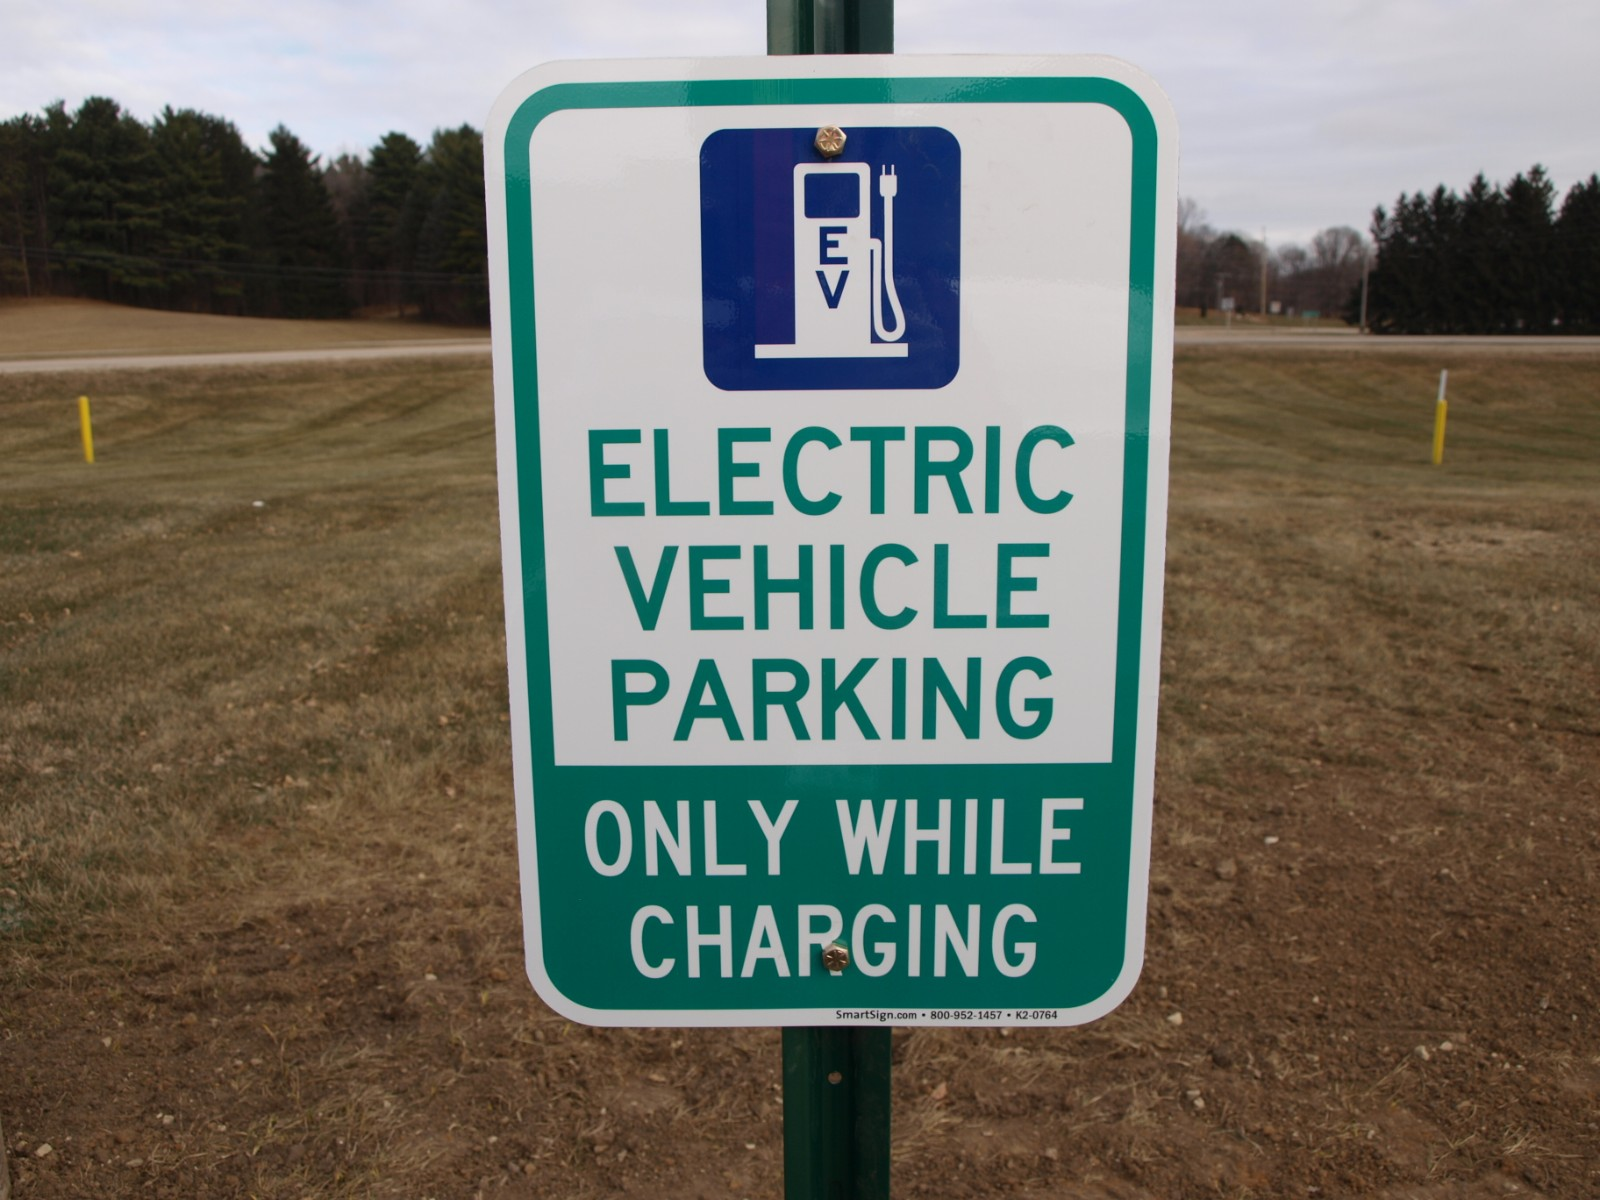 EV Parking - Only while charging